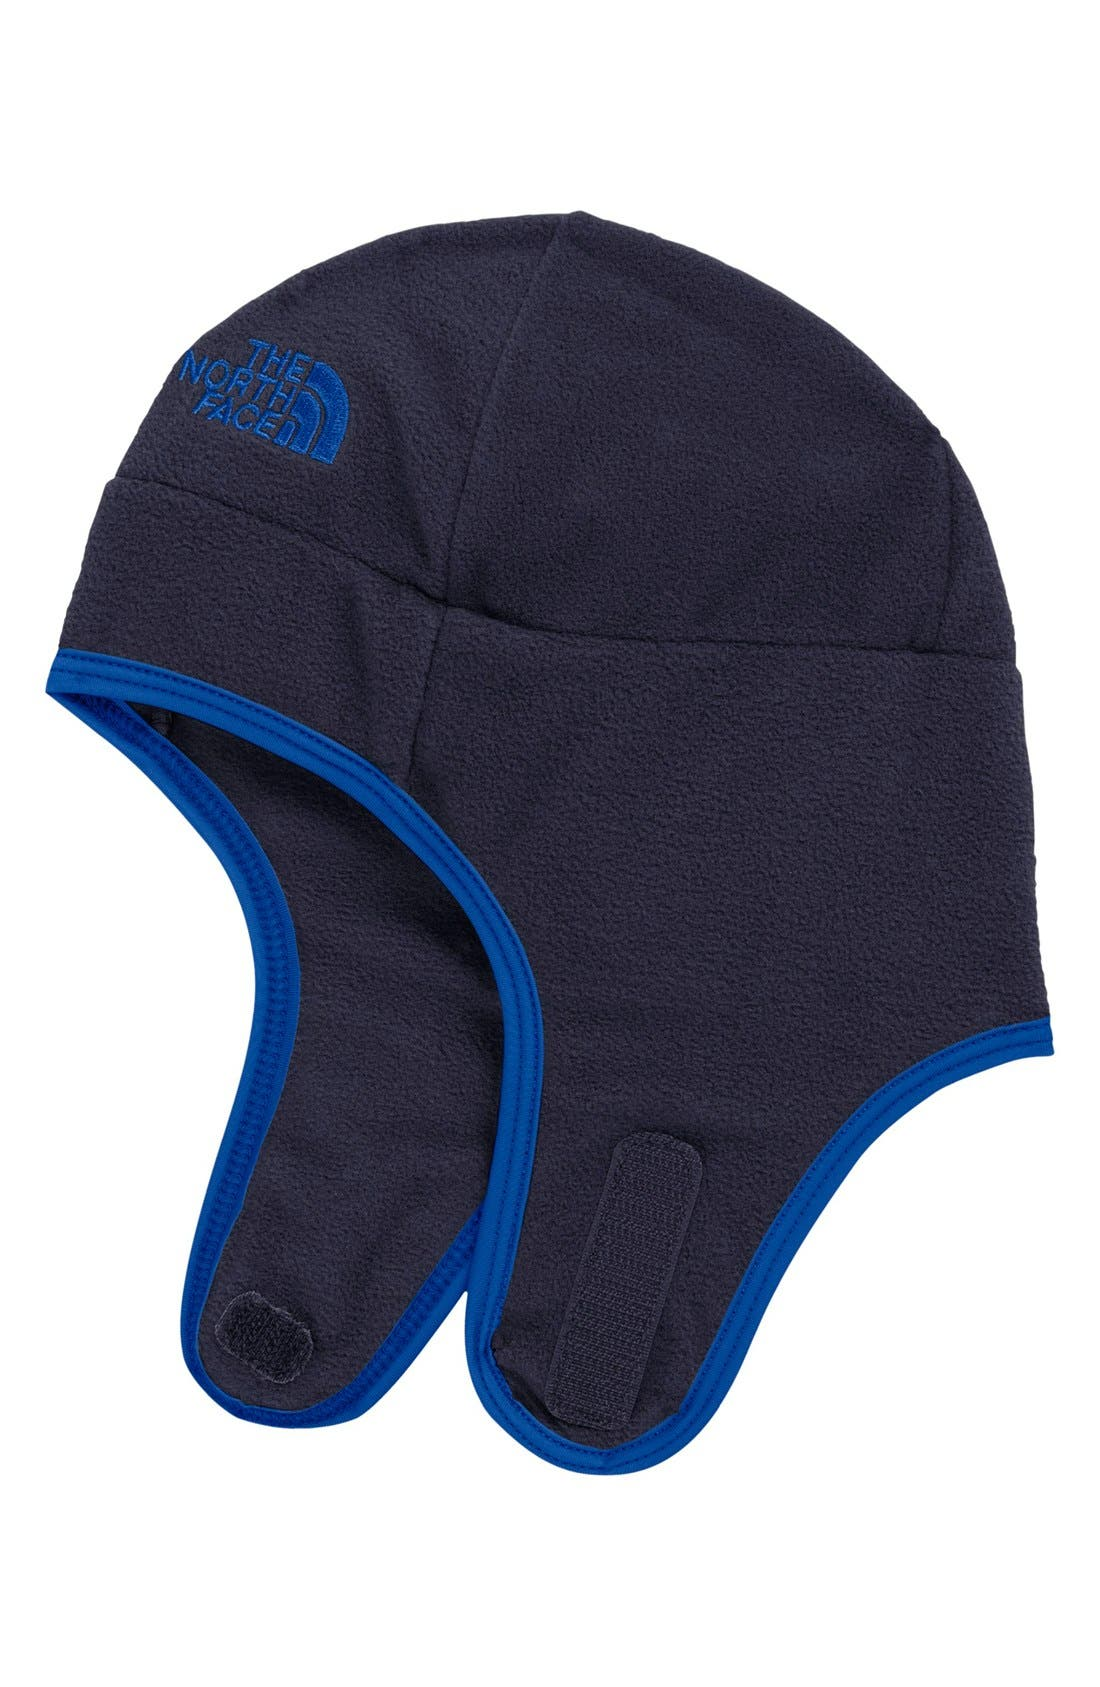 THE NORTH FACE 'Baby Nugget' Beanie, Main, color, 400